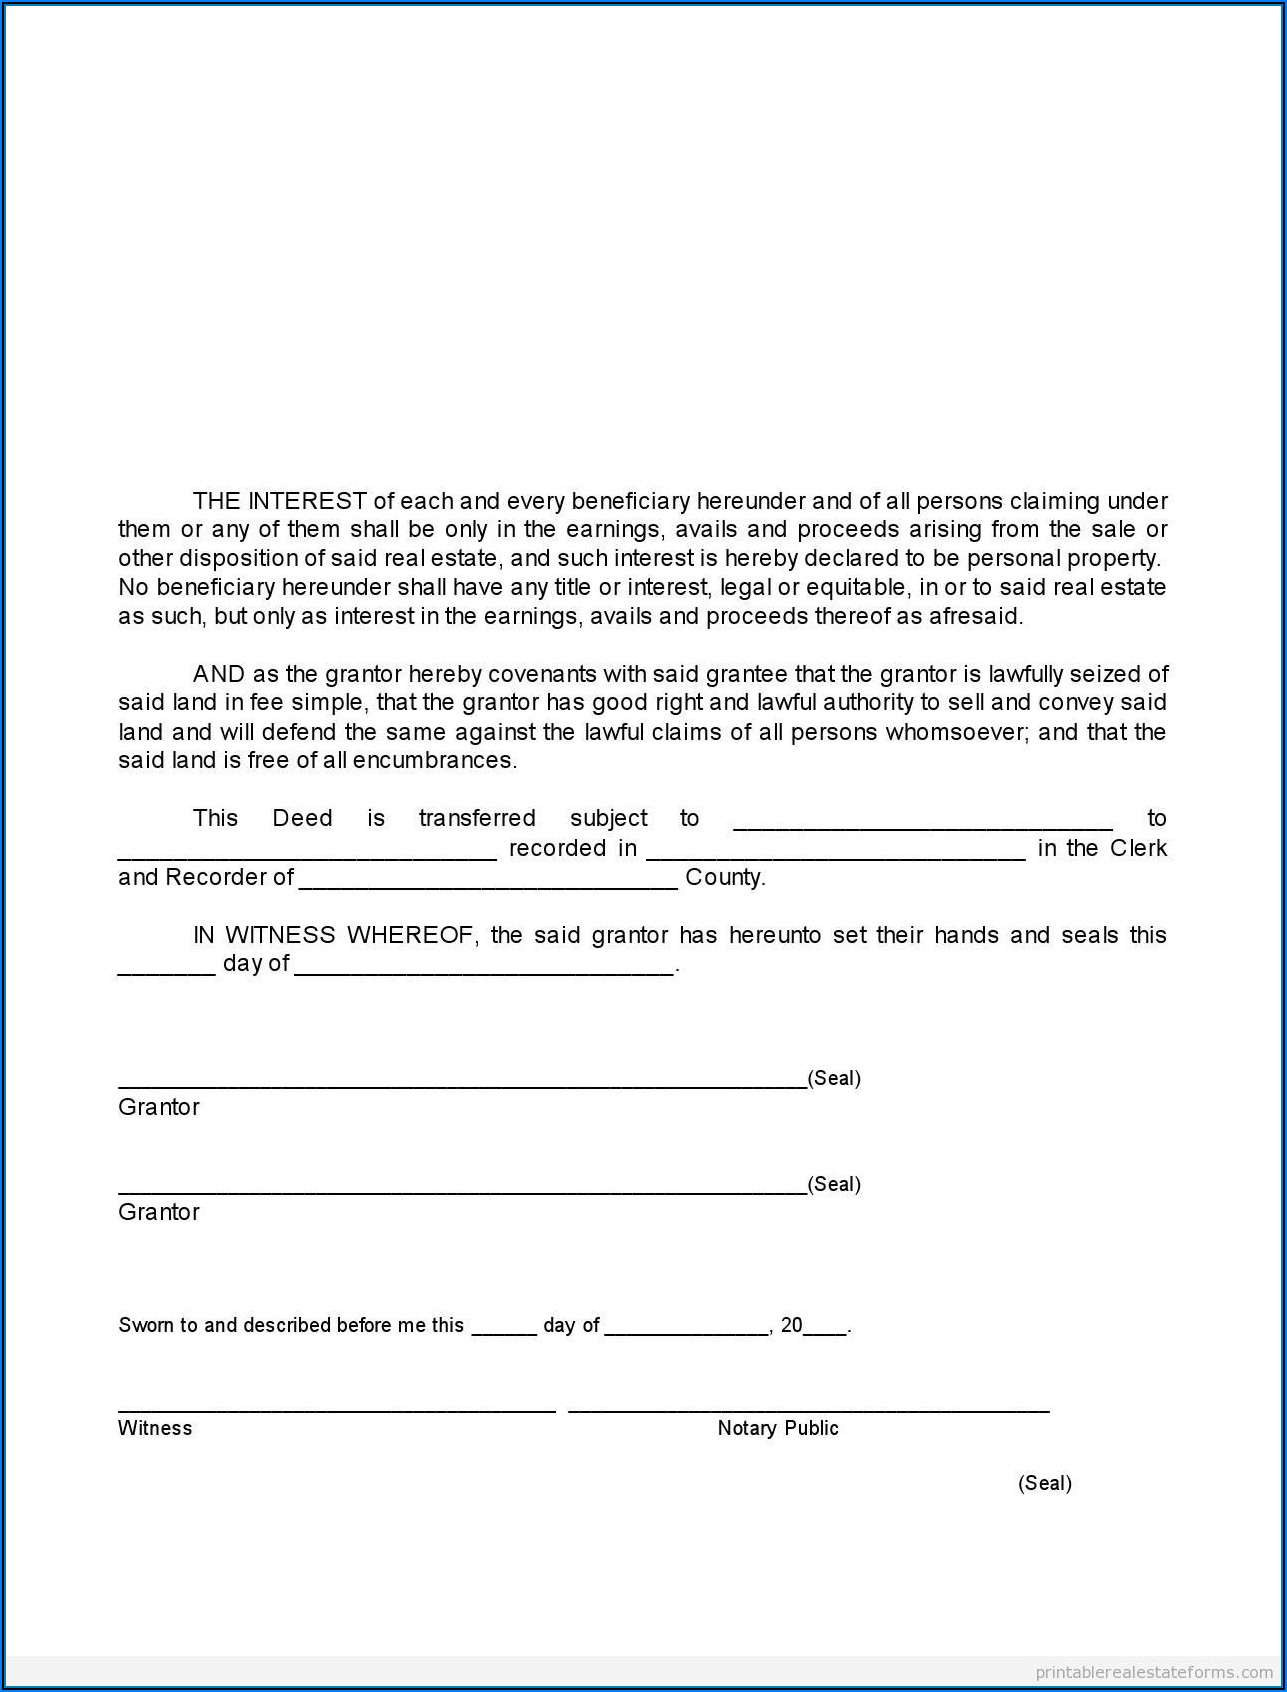 Florida Warranty Deed Form Free